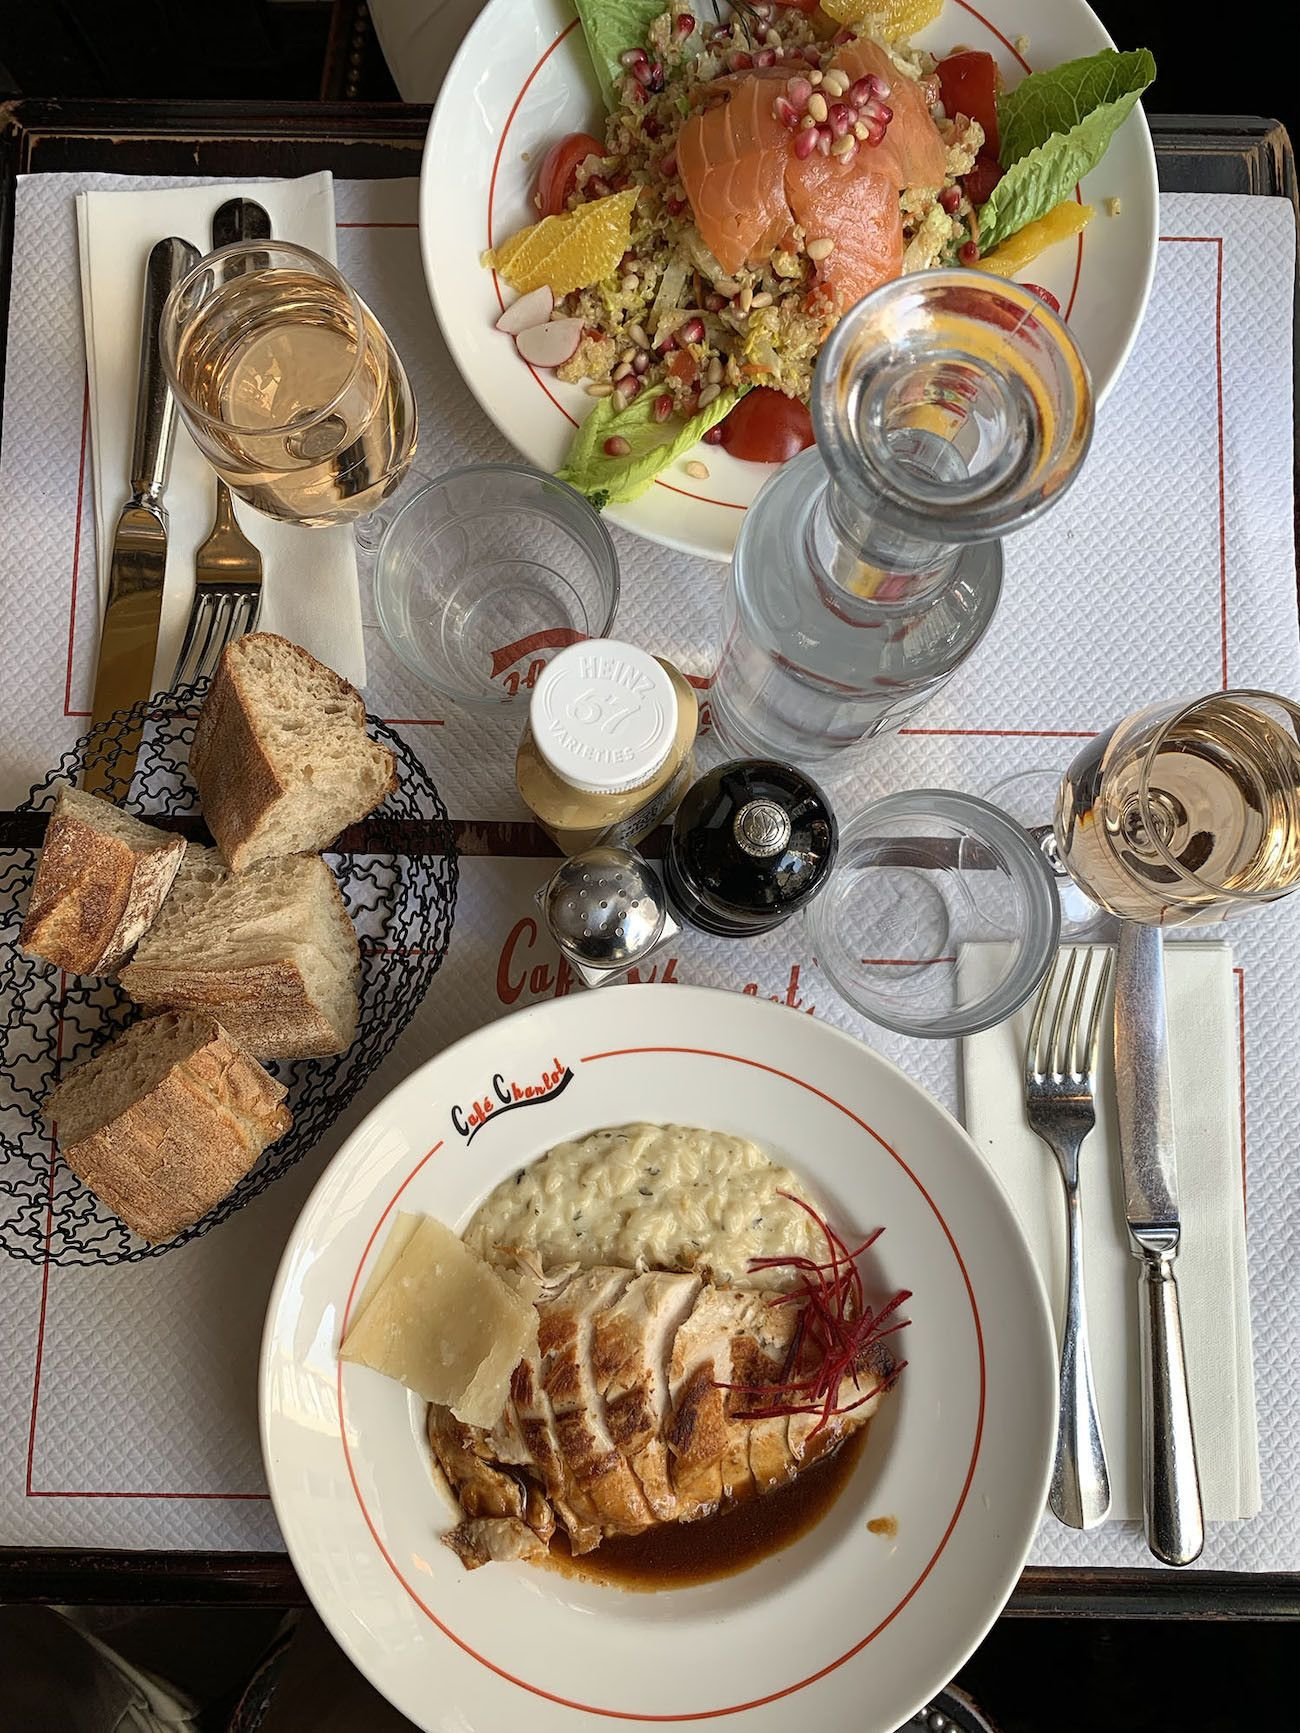 Foodblog About Fuel, Paris, Risotto, Quinoa Salat, Brot